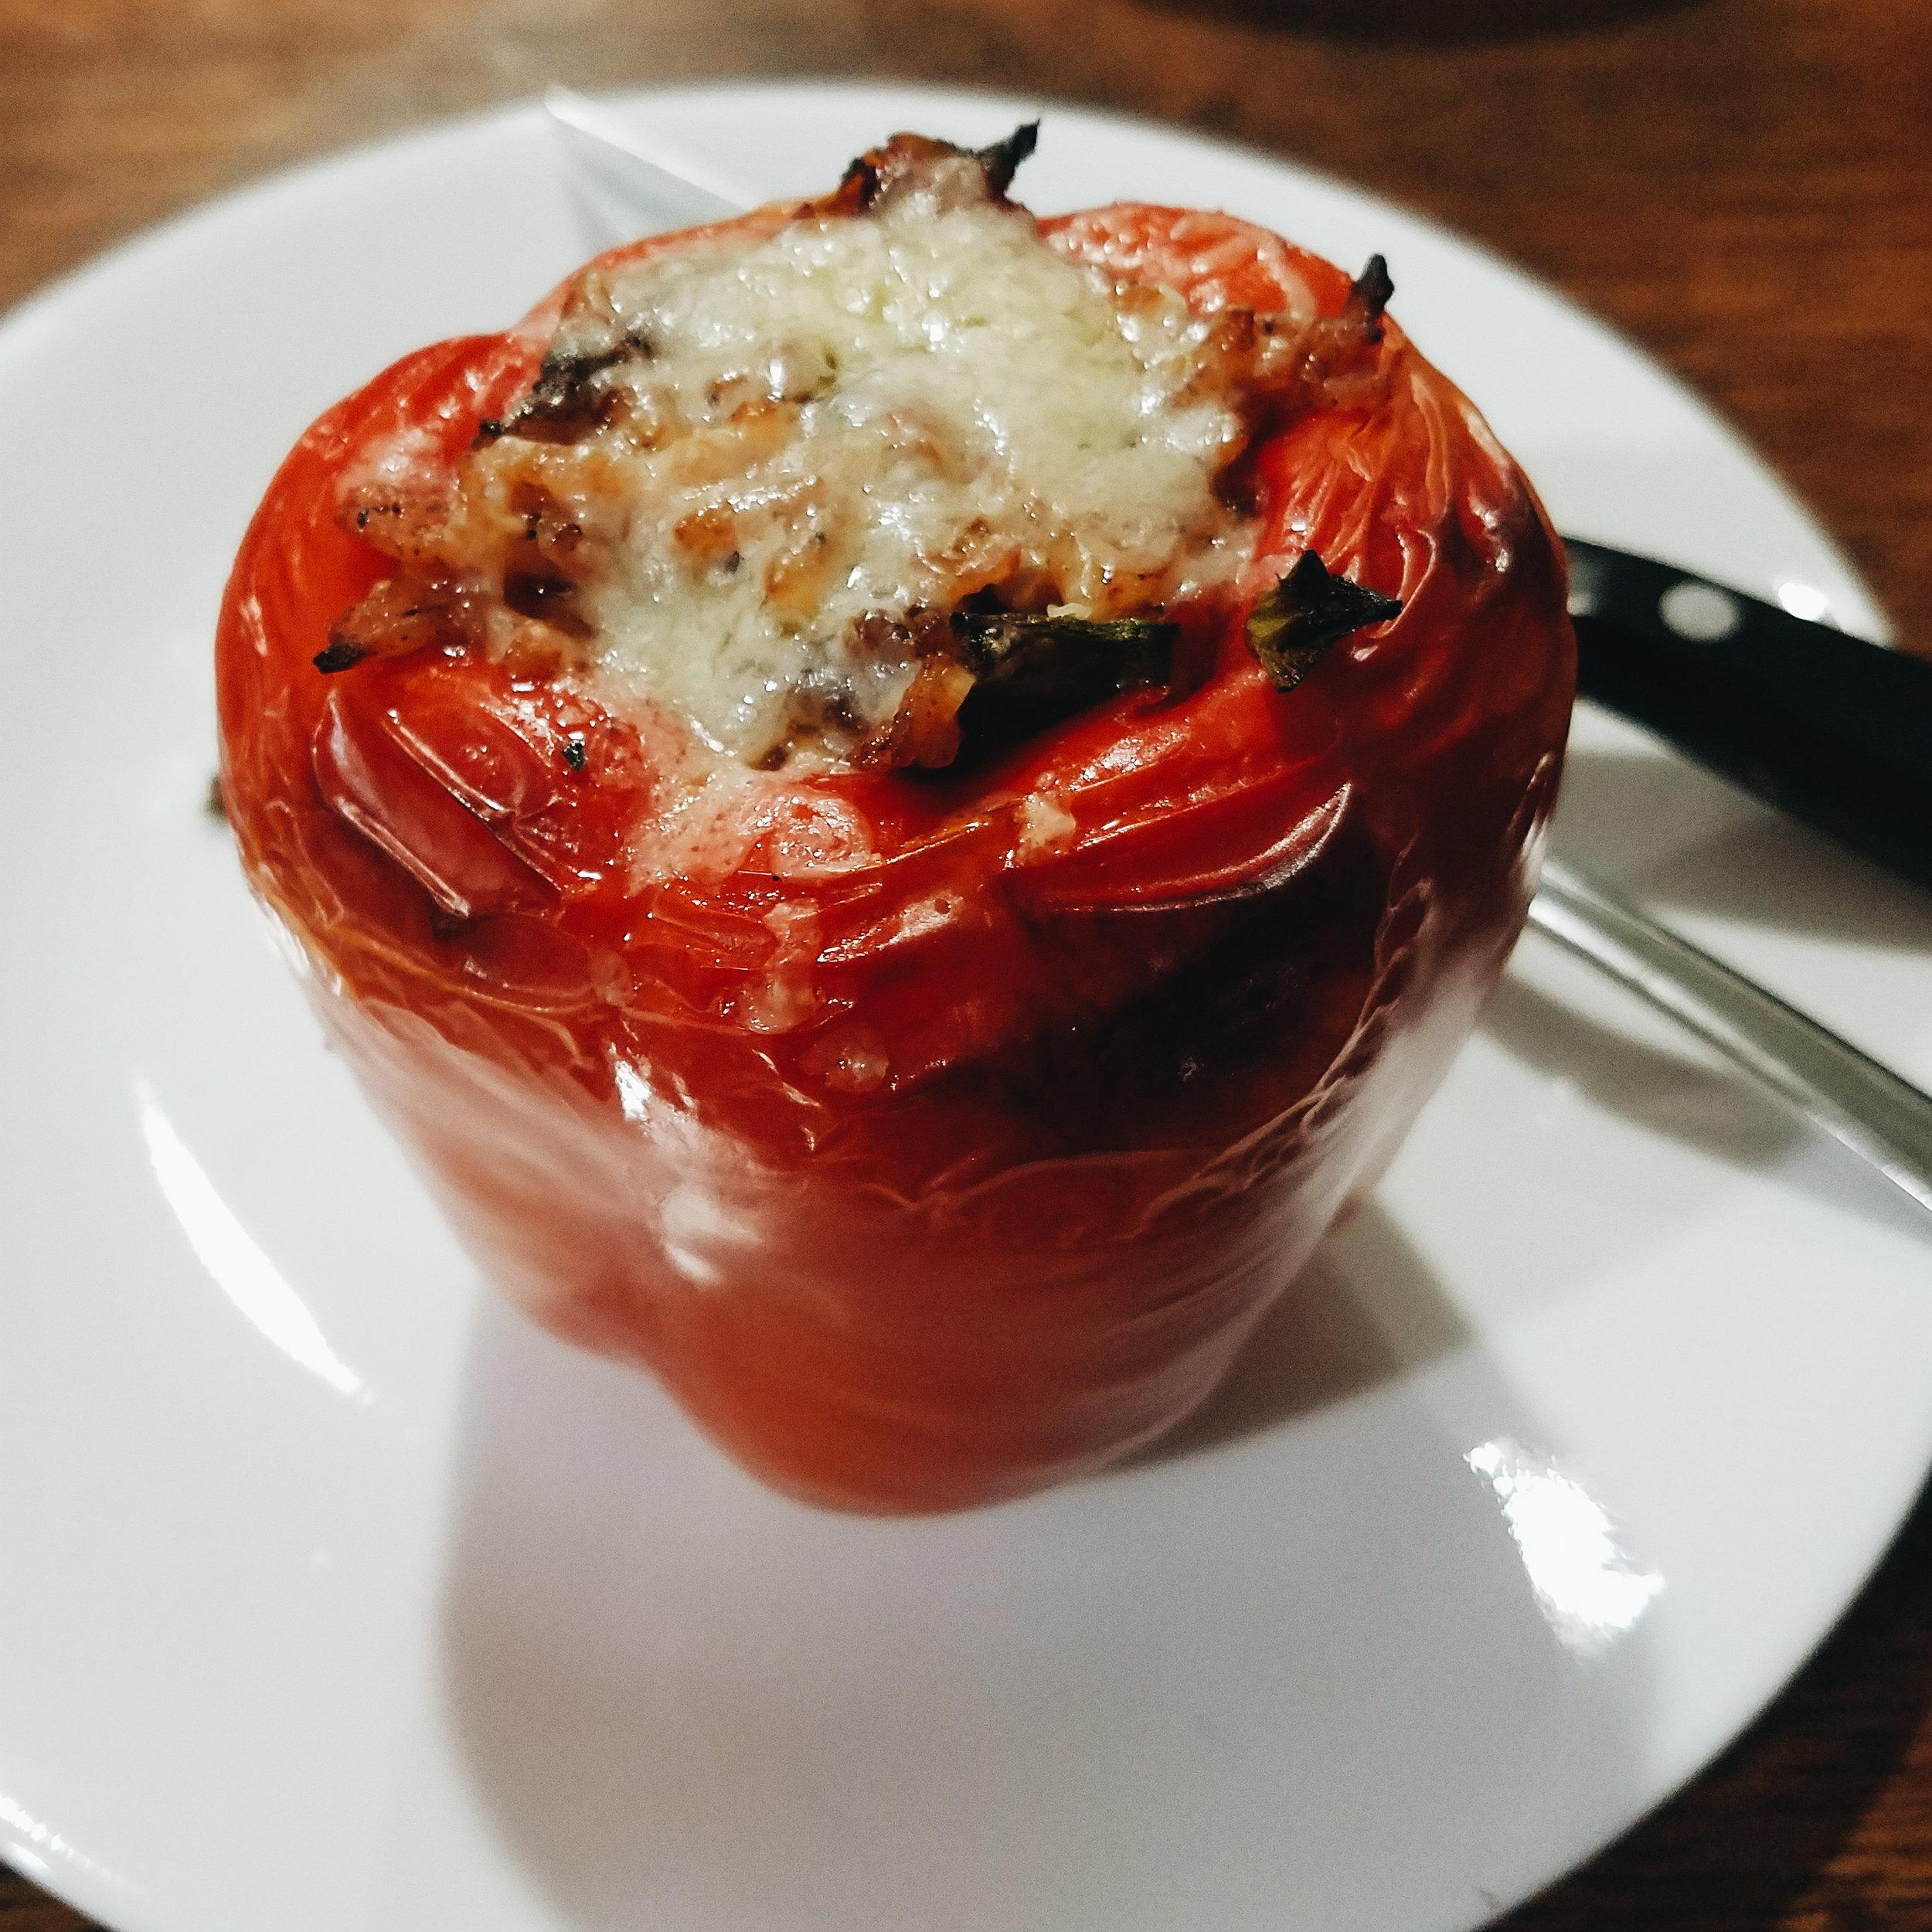 I improvised stuffed peppers for dinner this week after seeing them in an REI catalog